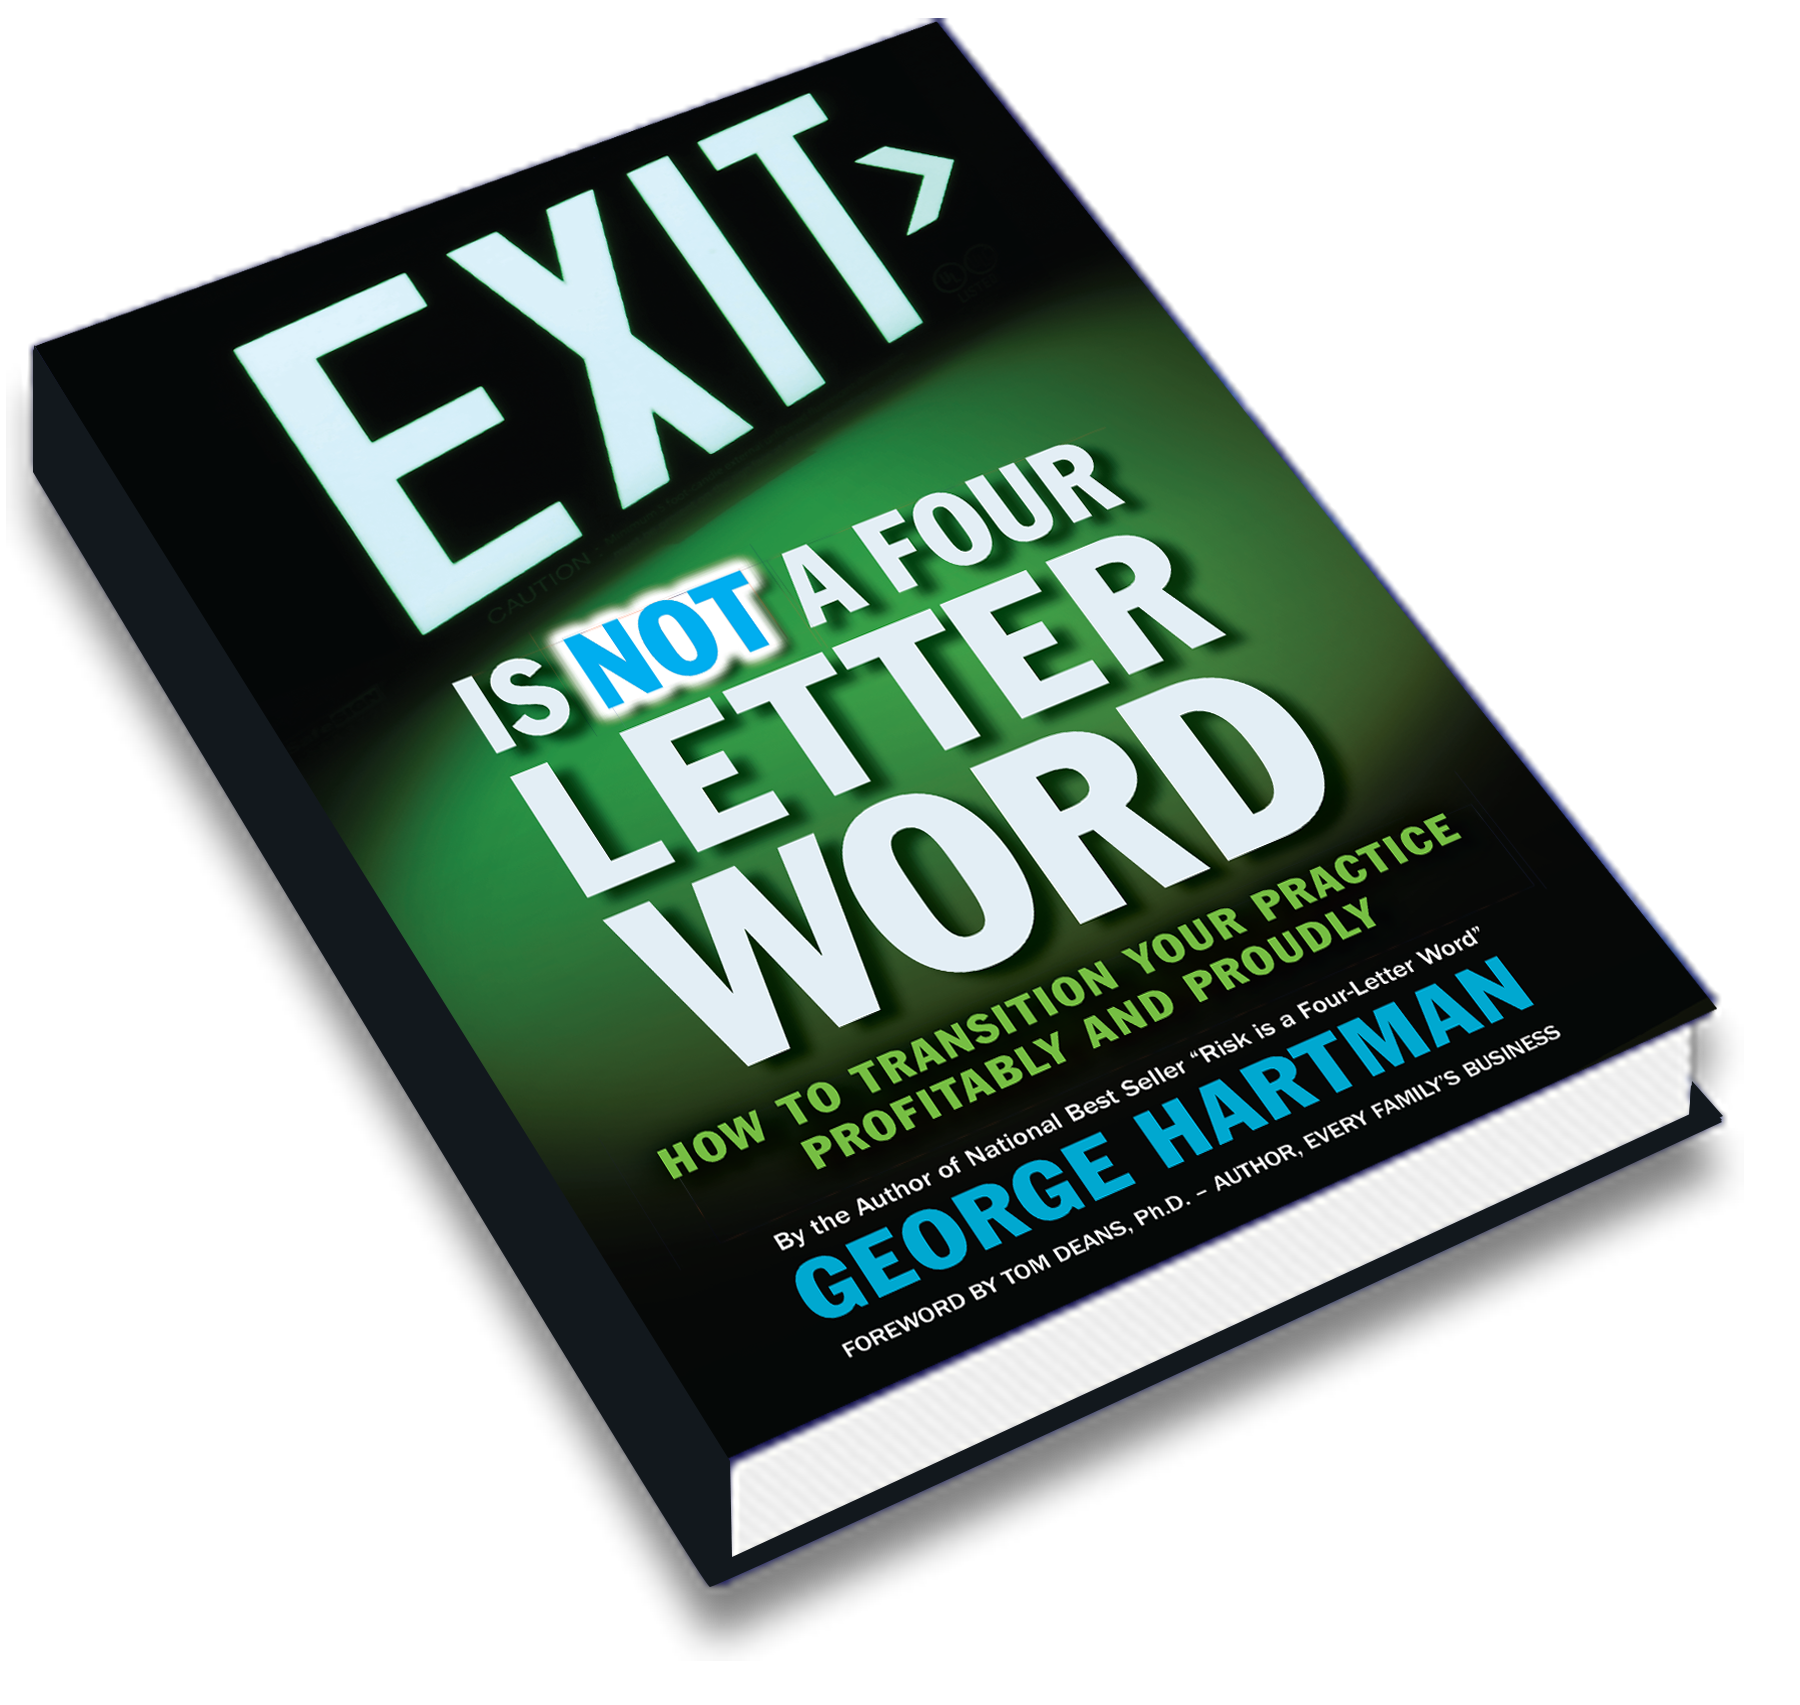 EXIT is NOT a Four Letter Word